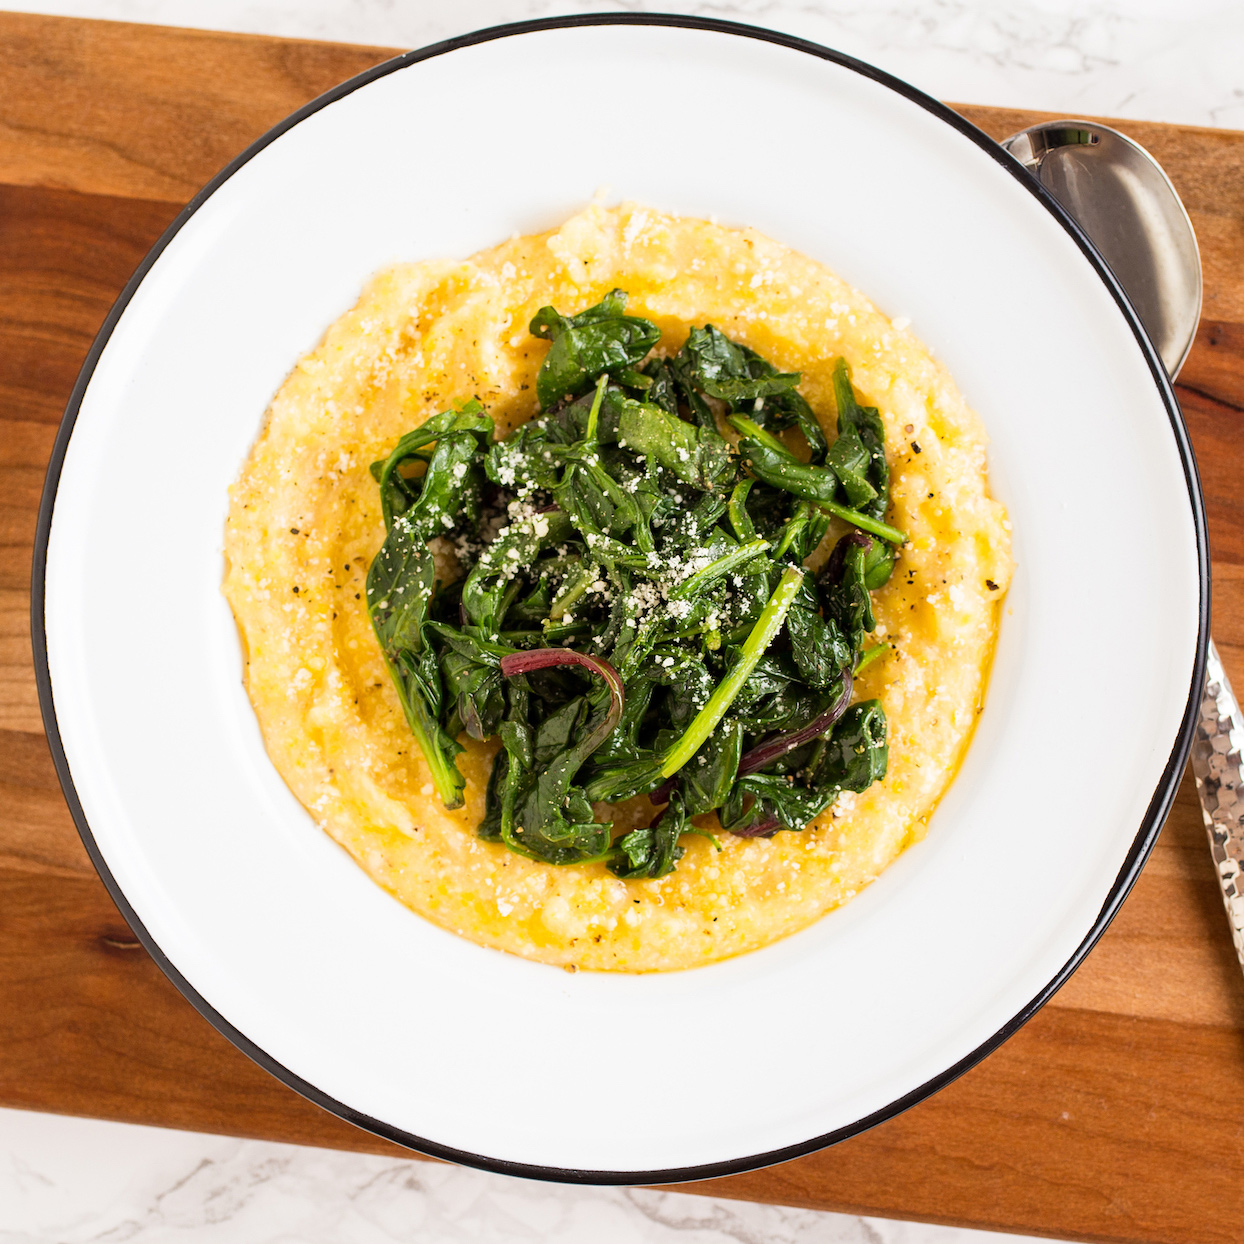 Bowl of Polenta and greens